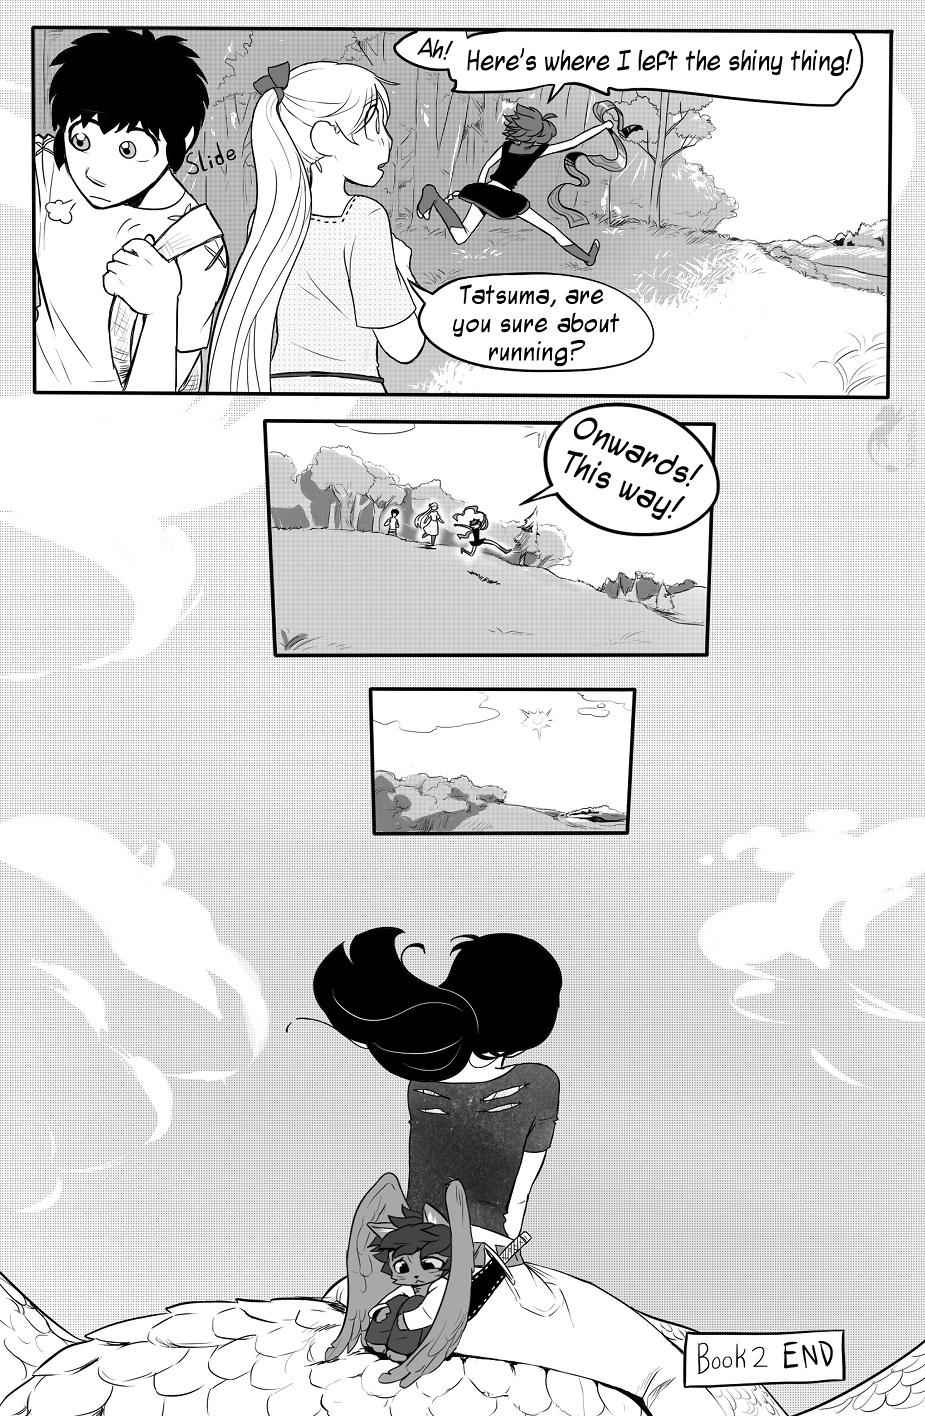 Page 34 (Book 2)